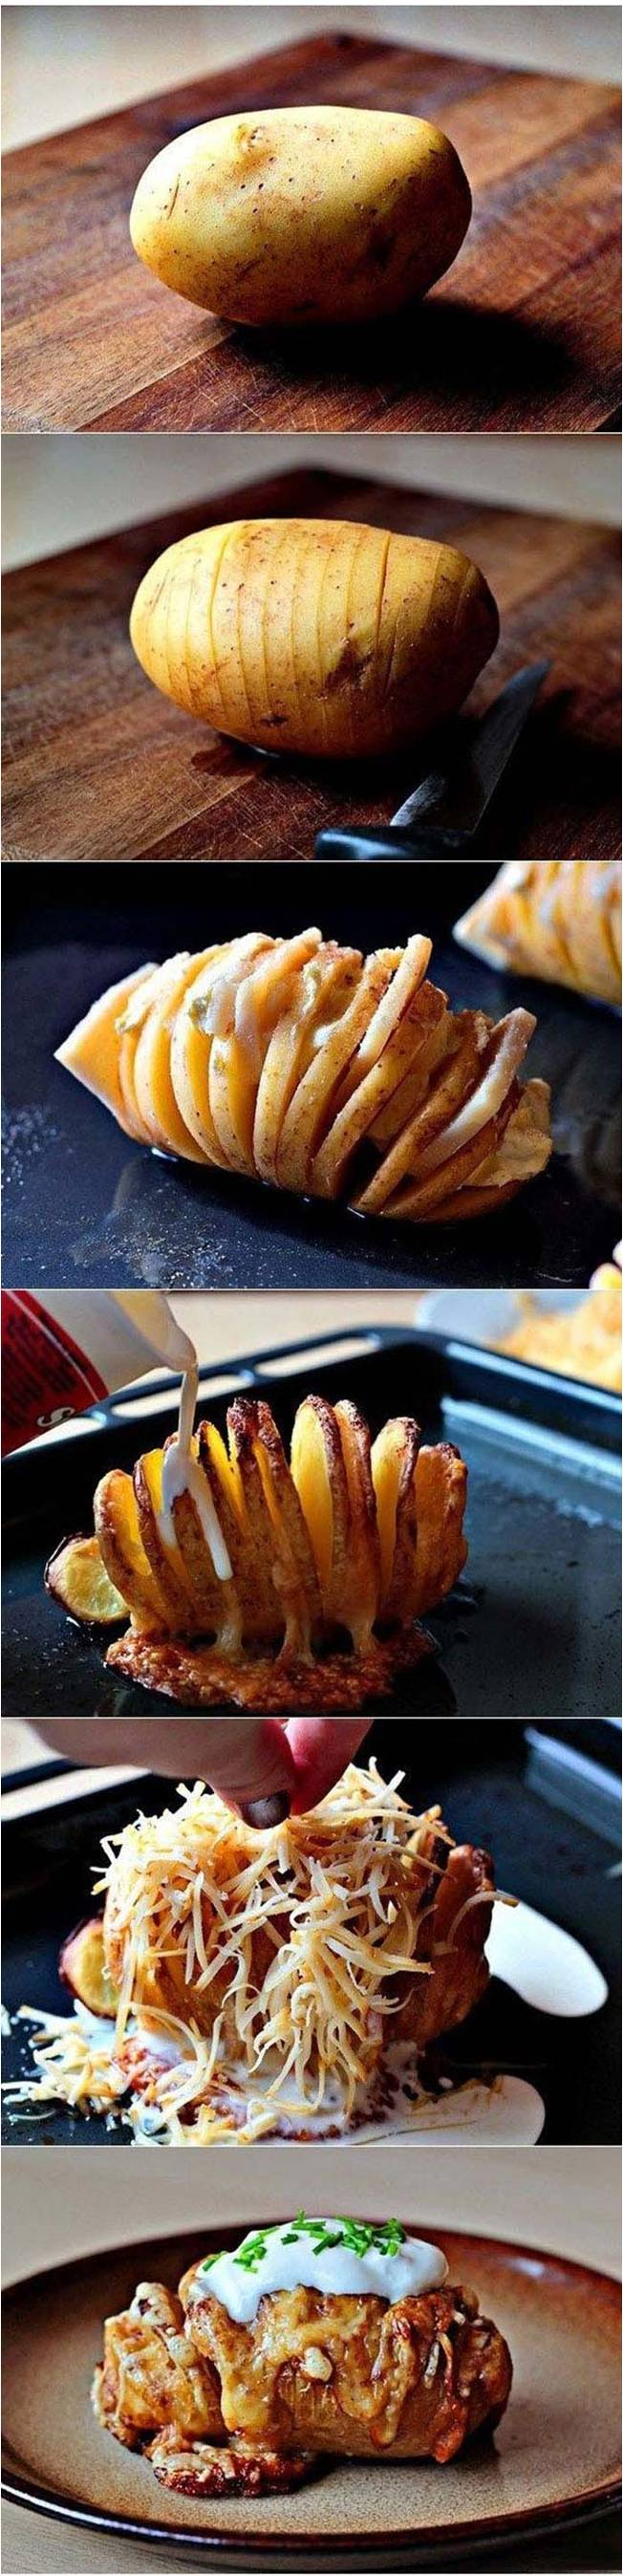 9. Perfect potato